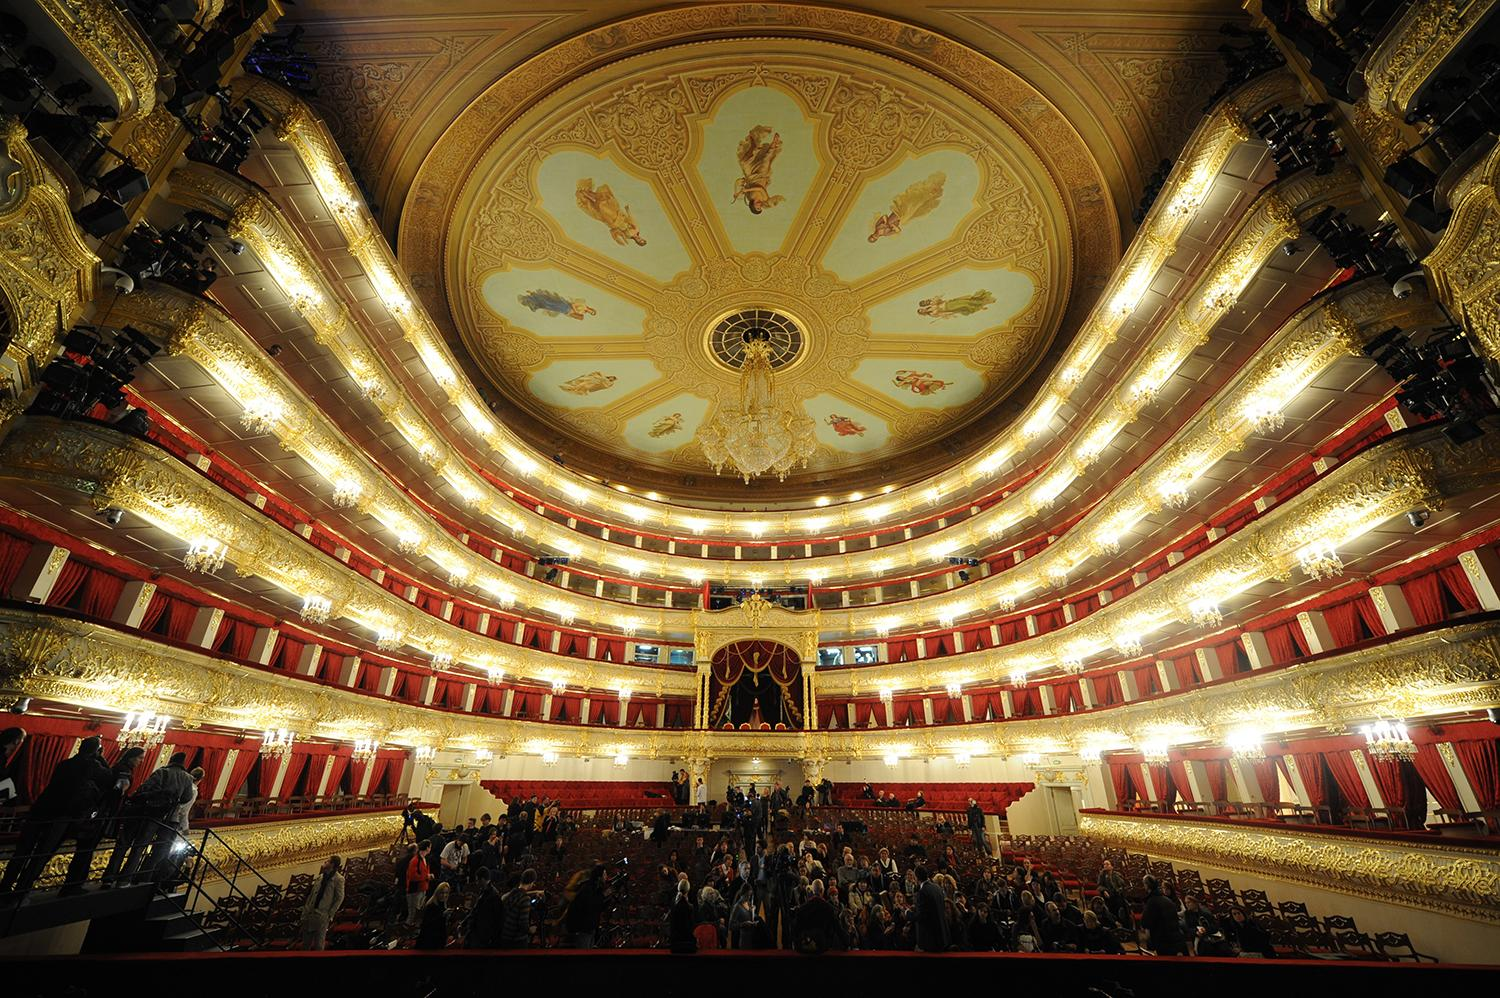 <p>Journalists attend a media tour of the Bolshoi Theatre. The restored Moscow landmark, built in the 1820s, reopened on Oct. 28. 2011, after an extensive six-year renovation. (Photo: Kirill Kudryavtsev/AFP/Getty Images) </p>